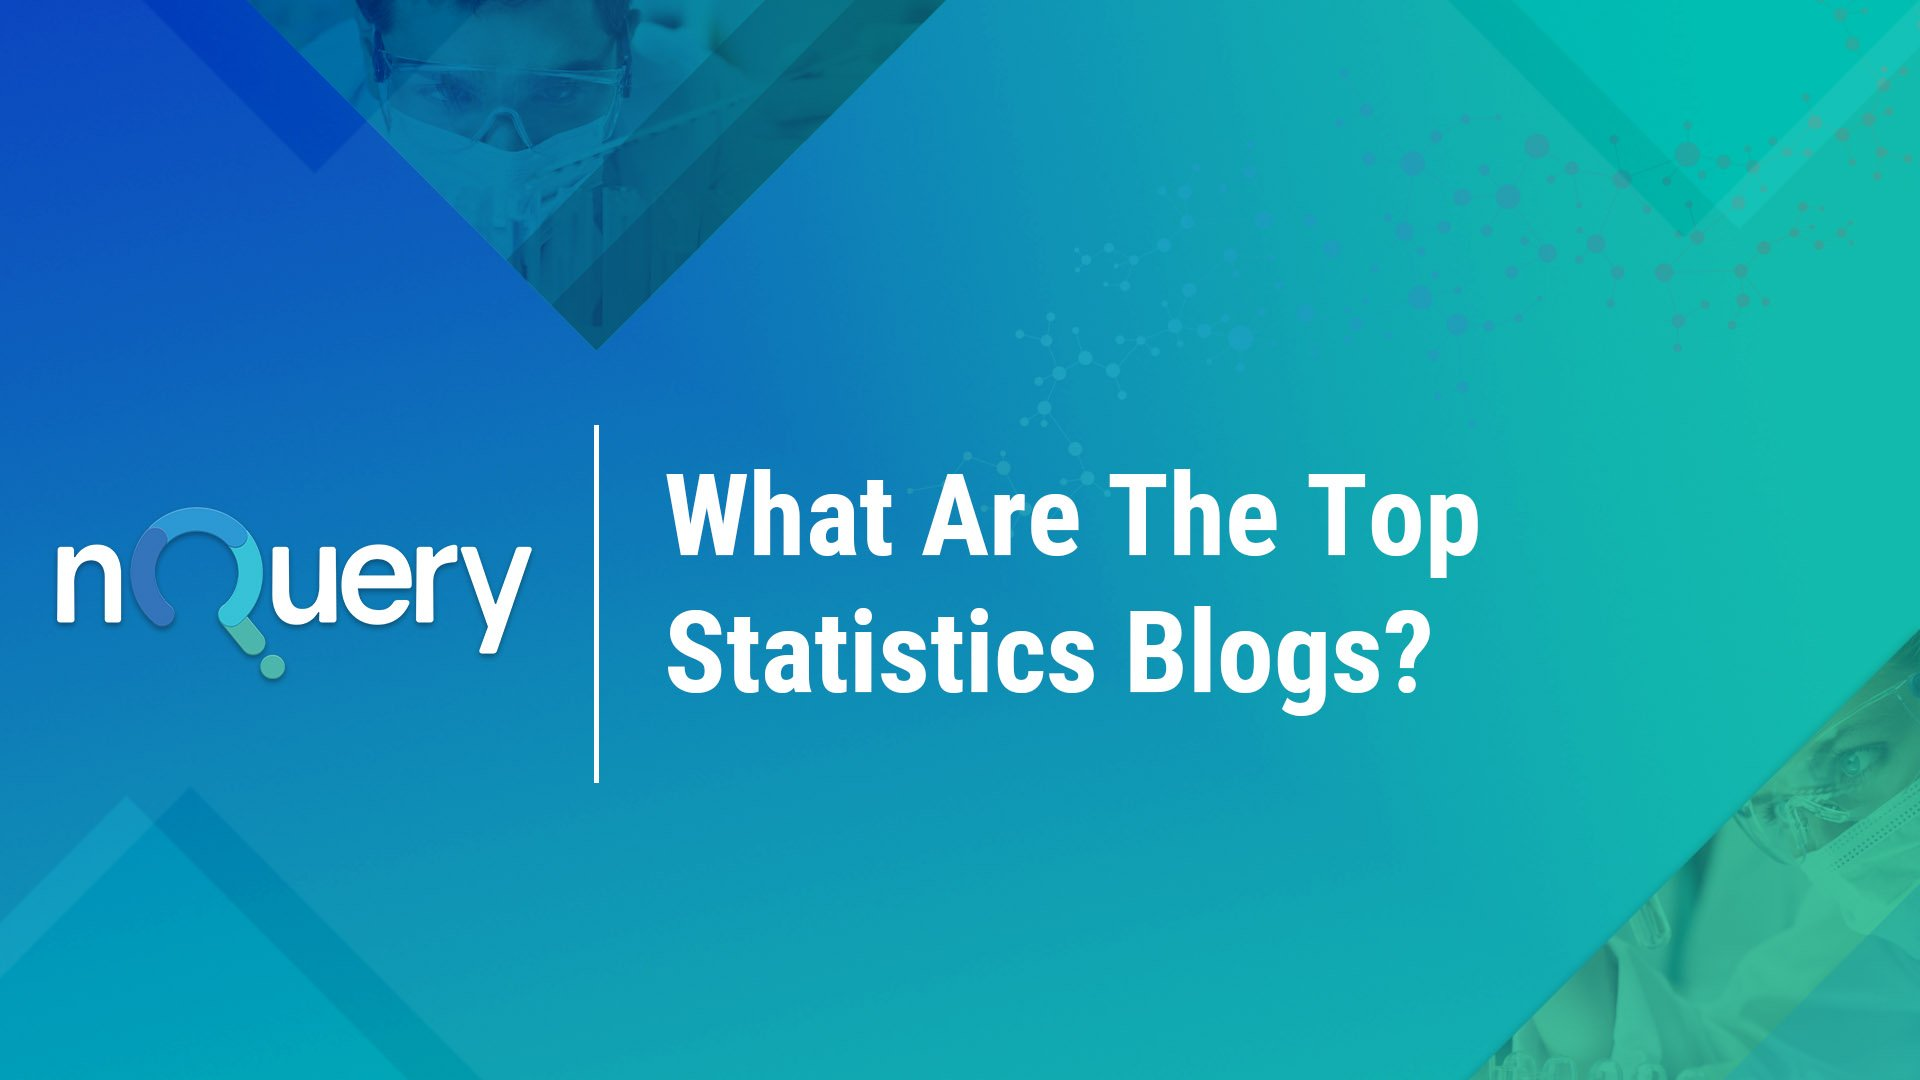 What Are The Top Statistics Blogs